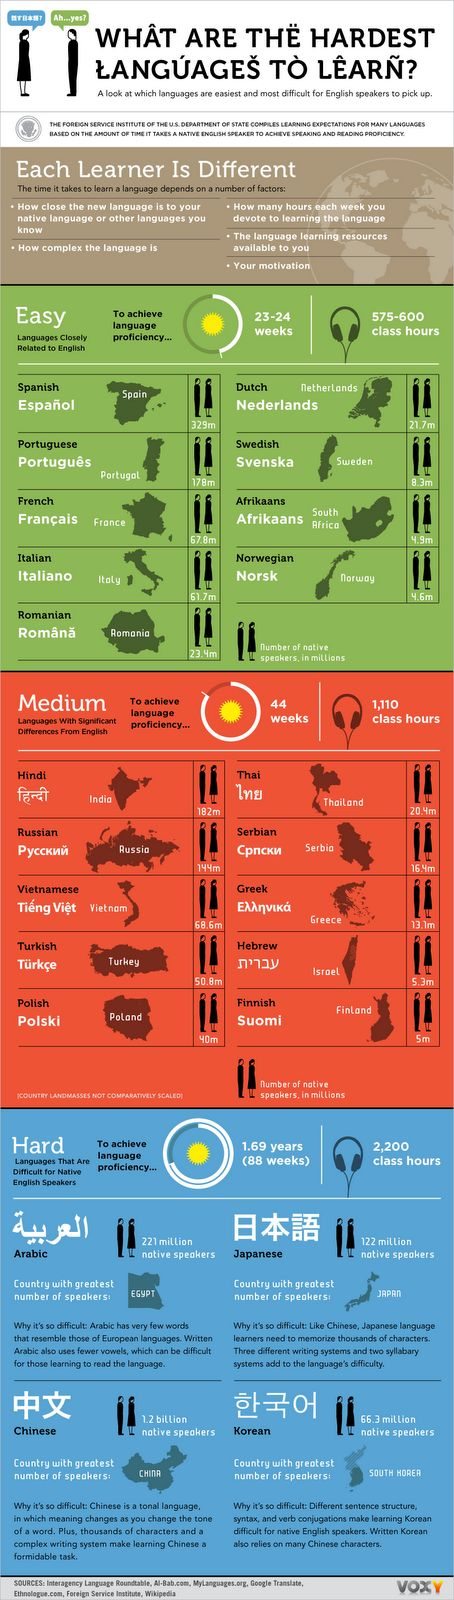 Hardest languages for an English speaker to learn. As you can see, Spanish should be easy for an English speaker!  Please take a look at www.spanish-school-herradura.com and www.summercamp-spain.com!